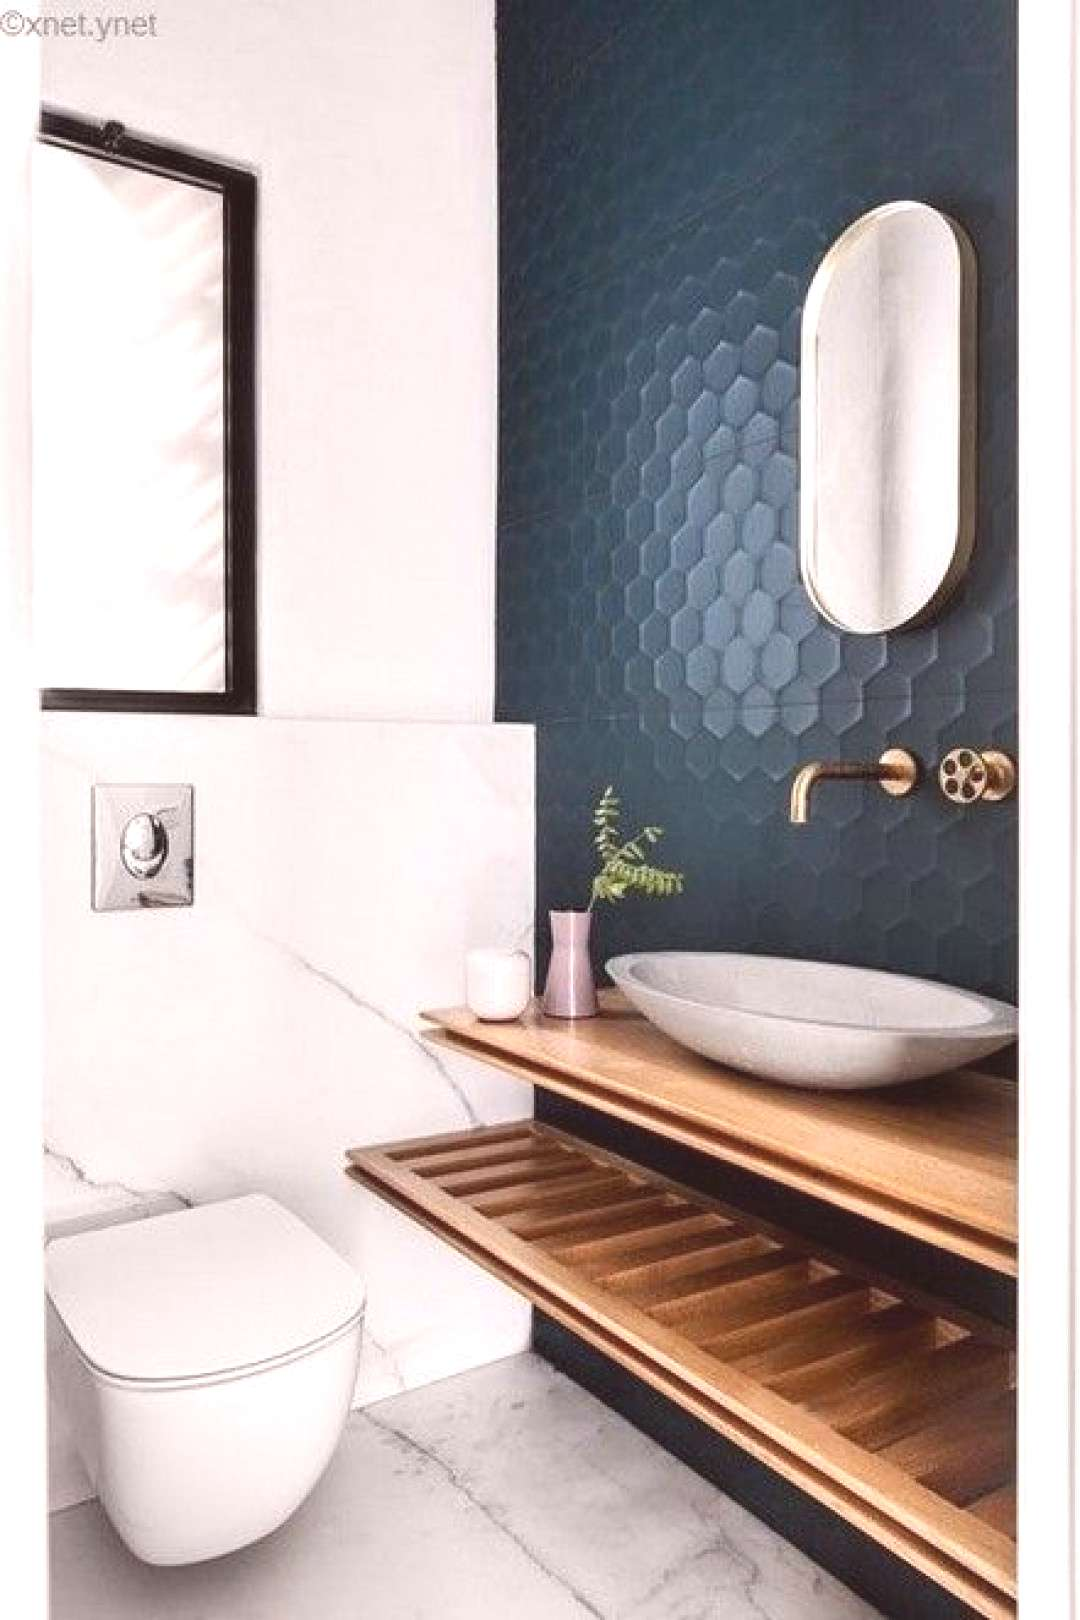 +27 Contemporary Bathrooms Designs To Inspire You Figure out how to select the proper size tiles to